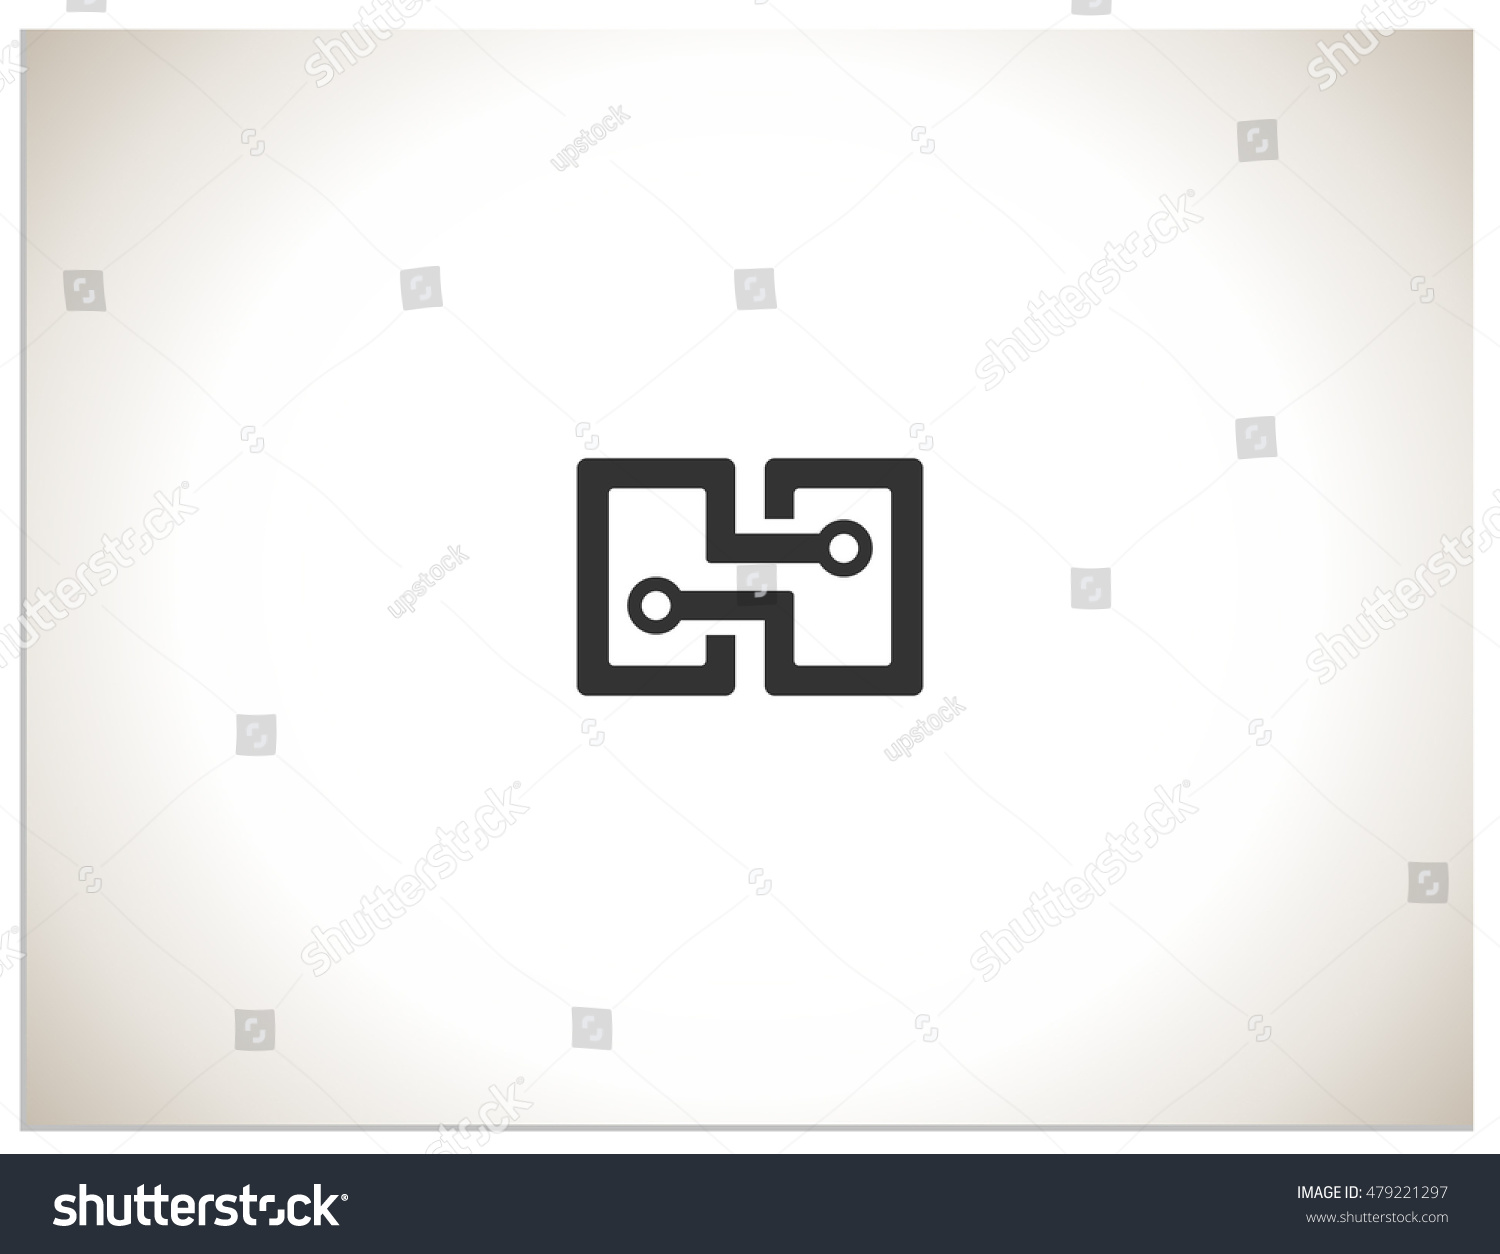 Isolated vector icon logo sign symbol stock vector 479221297 isolated vector icon logo sign symbol which consists of two mobile devices that are connected buycottarizona